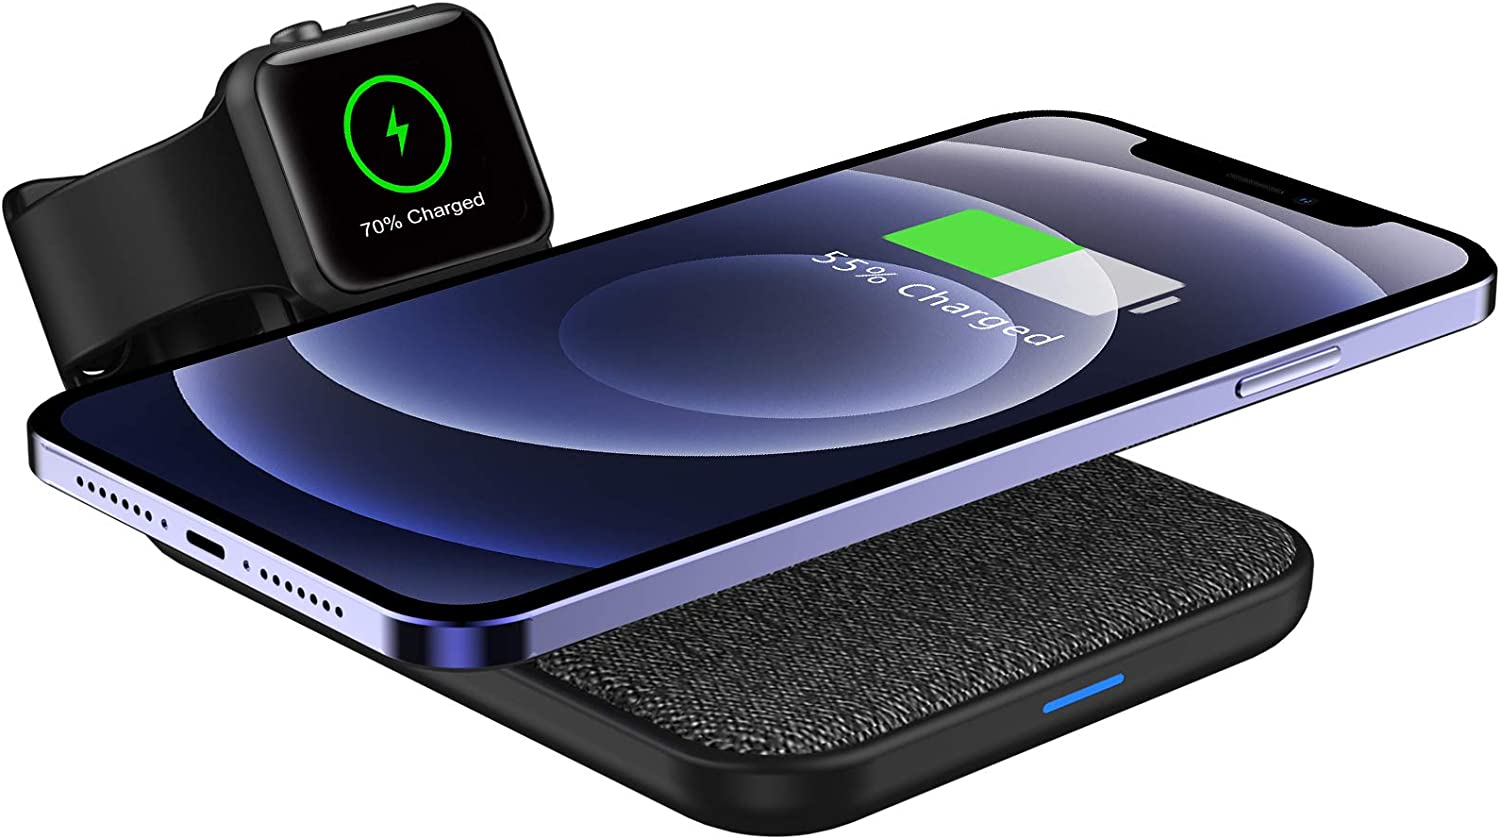 Mangotek 3 in 1 Wireless Charger iPhone Apple Charging Station, MFi Certified Wireless Charging Pad Qi Fast Chargers Stand Dock for iPhone 11/12/11 Pro/SE 2020/XS Max/XR/X/8/8Plus/iWatch/Airpods